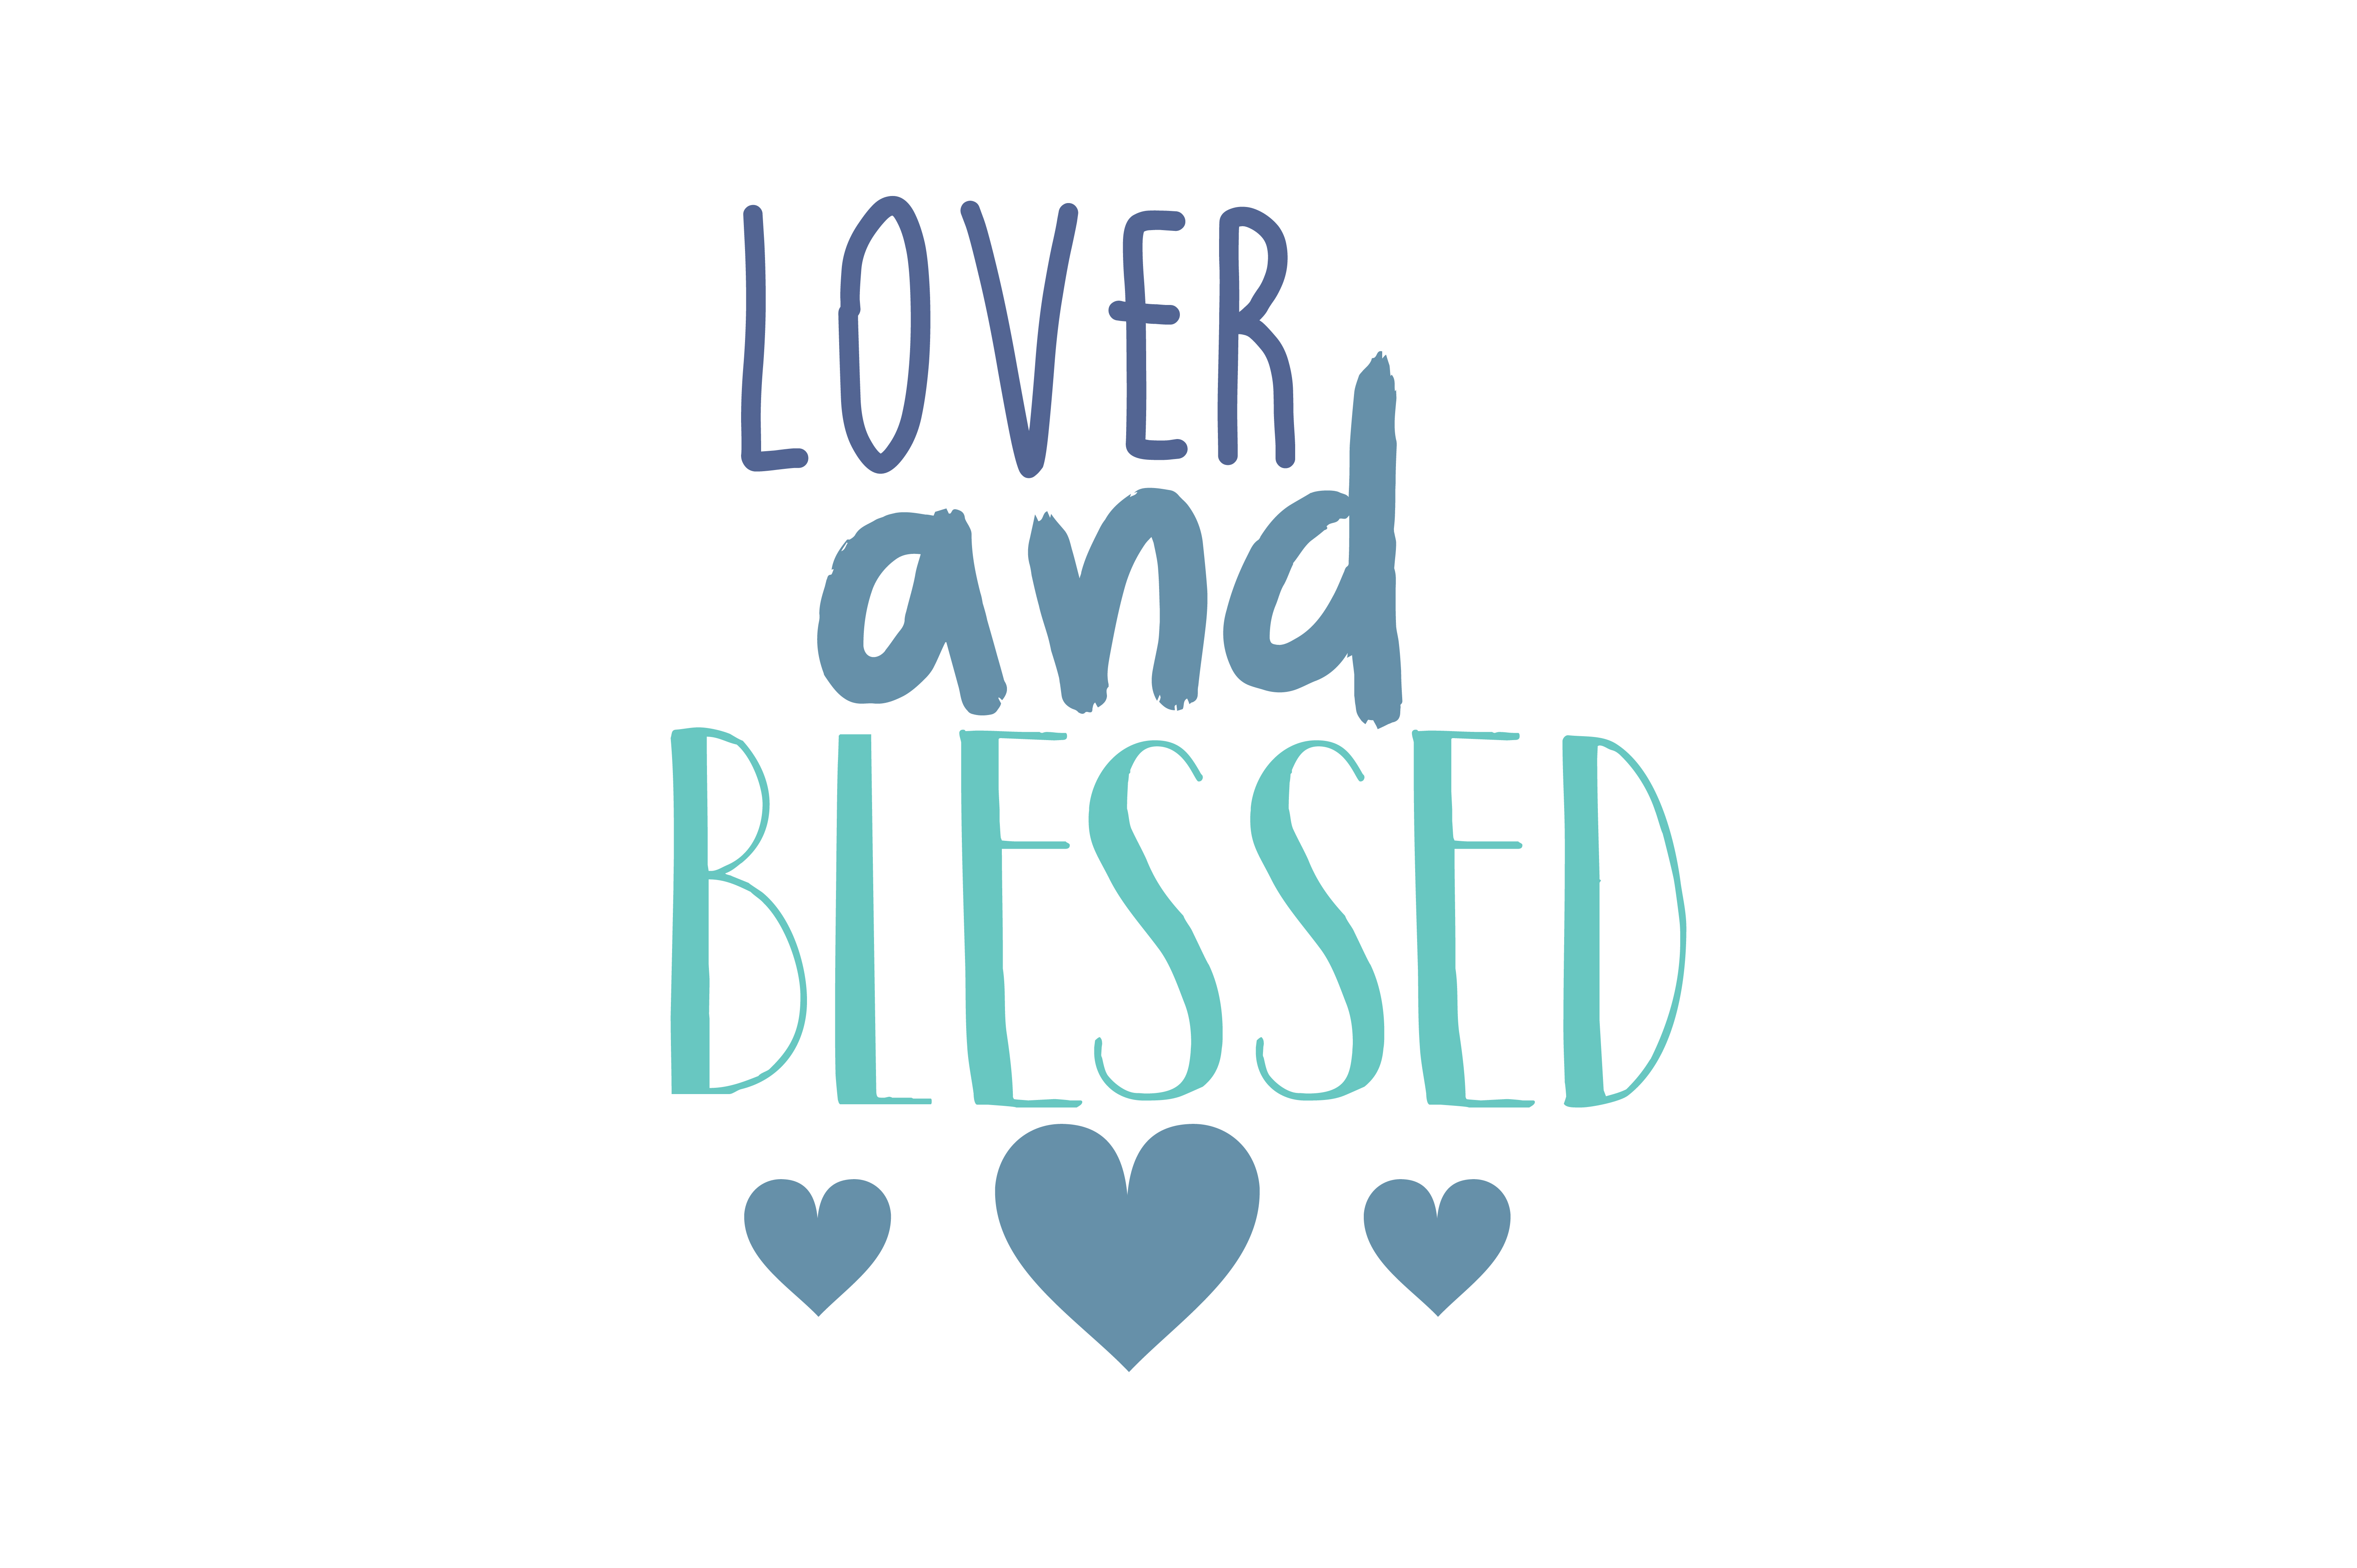 Download Free Lover And Blessed Quote Svg Cut Graphic By Thelucky Creative for Cricut Explore, Silhouette and other cutting machines.